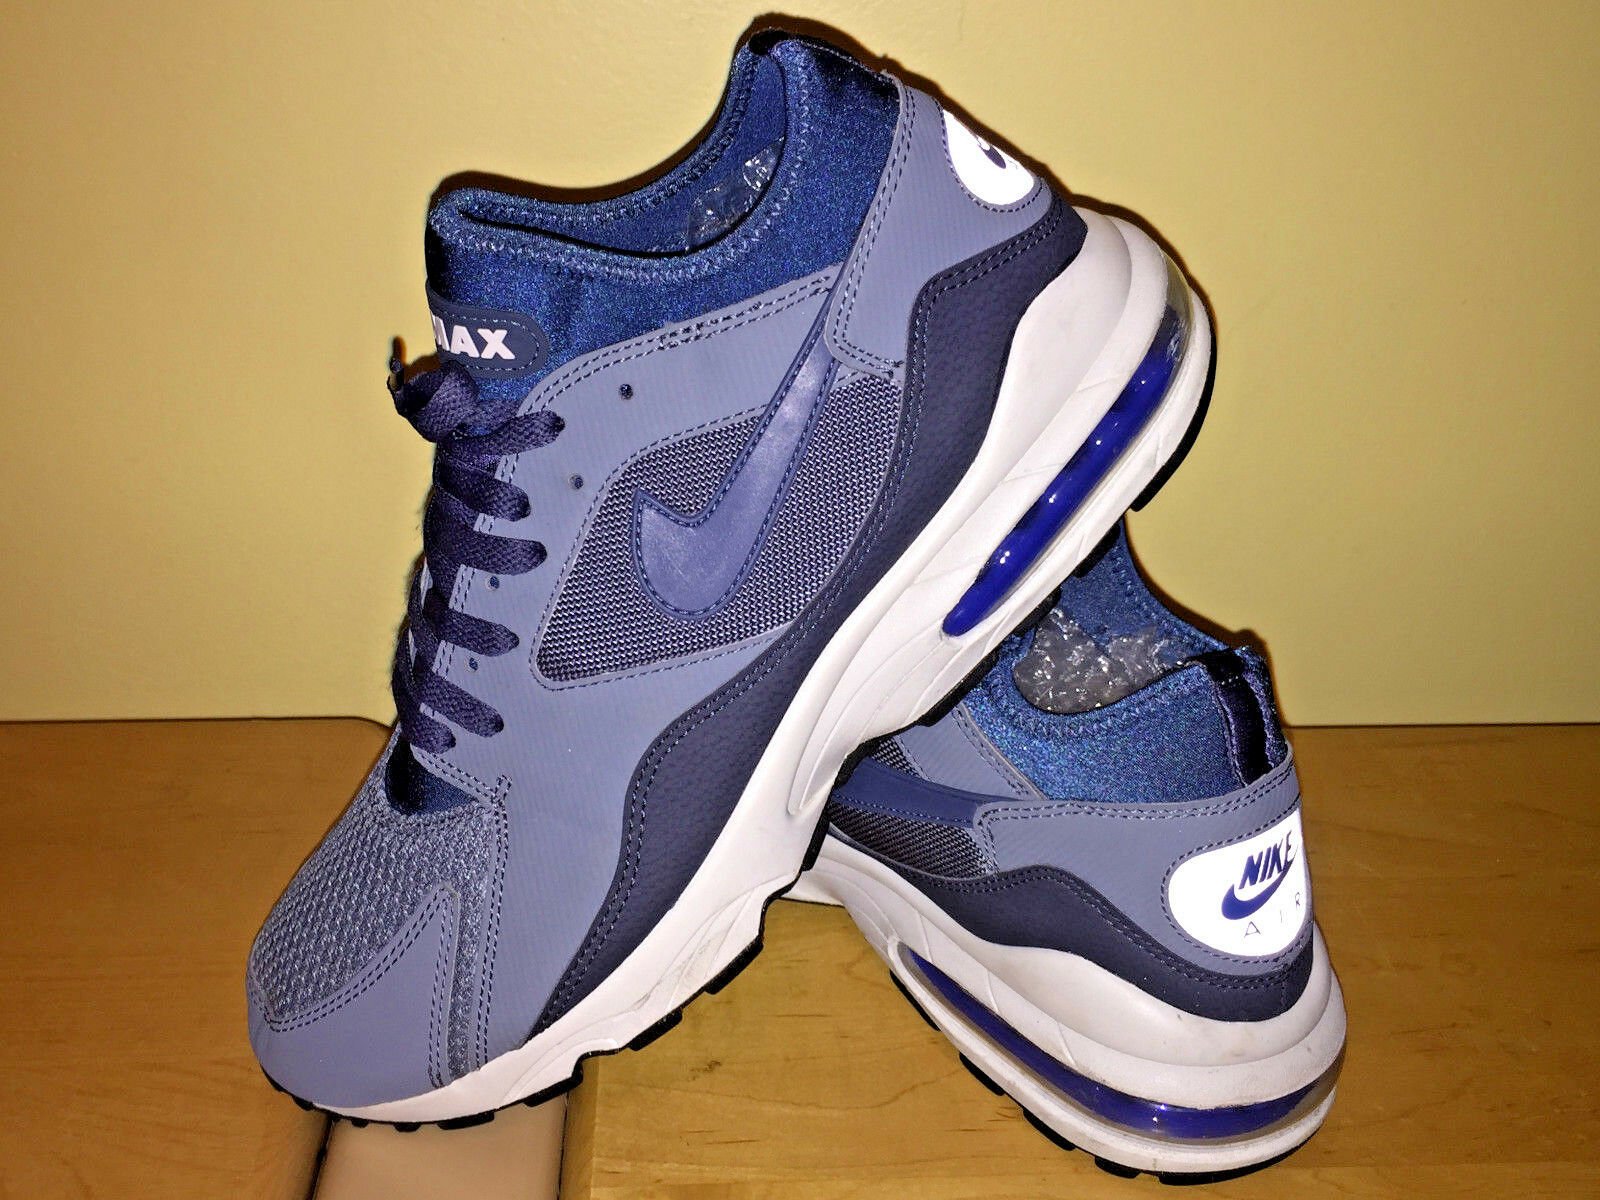 Nike Air Max (bluee) Running Cross-Training MEN'S Size 12